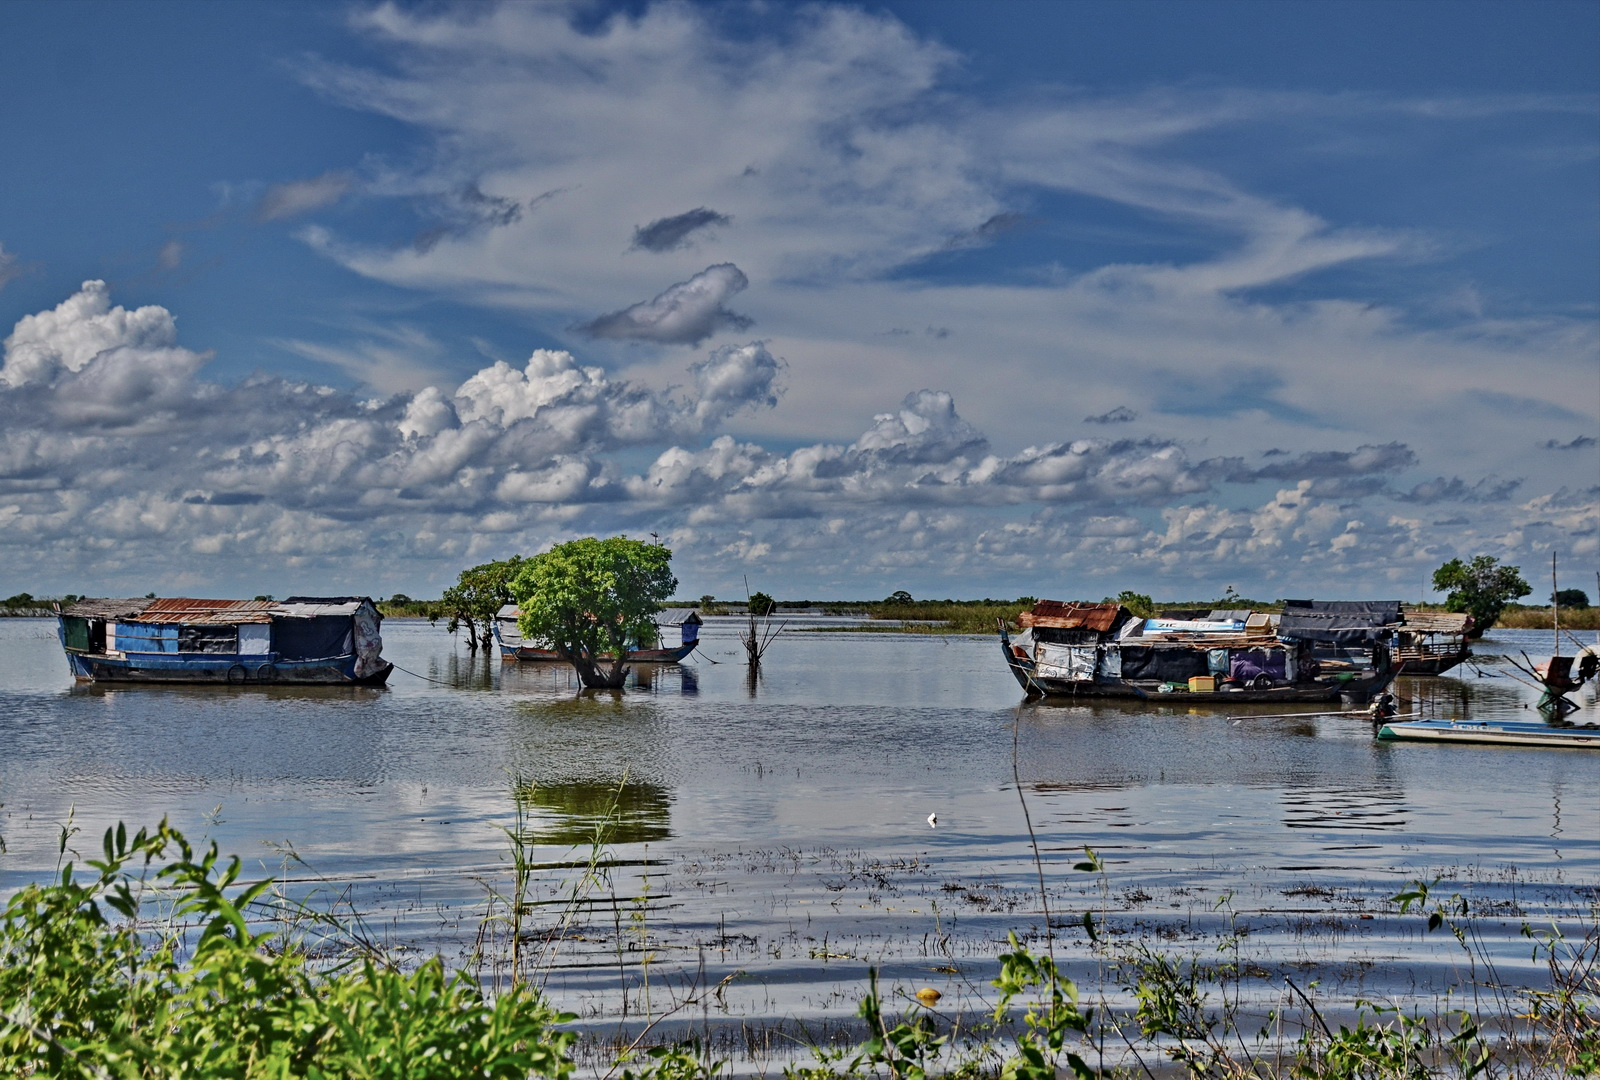 Houseboats on the The Sangkar River, Cambodia